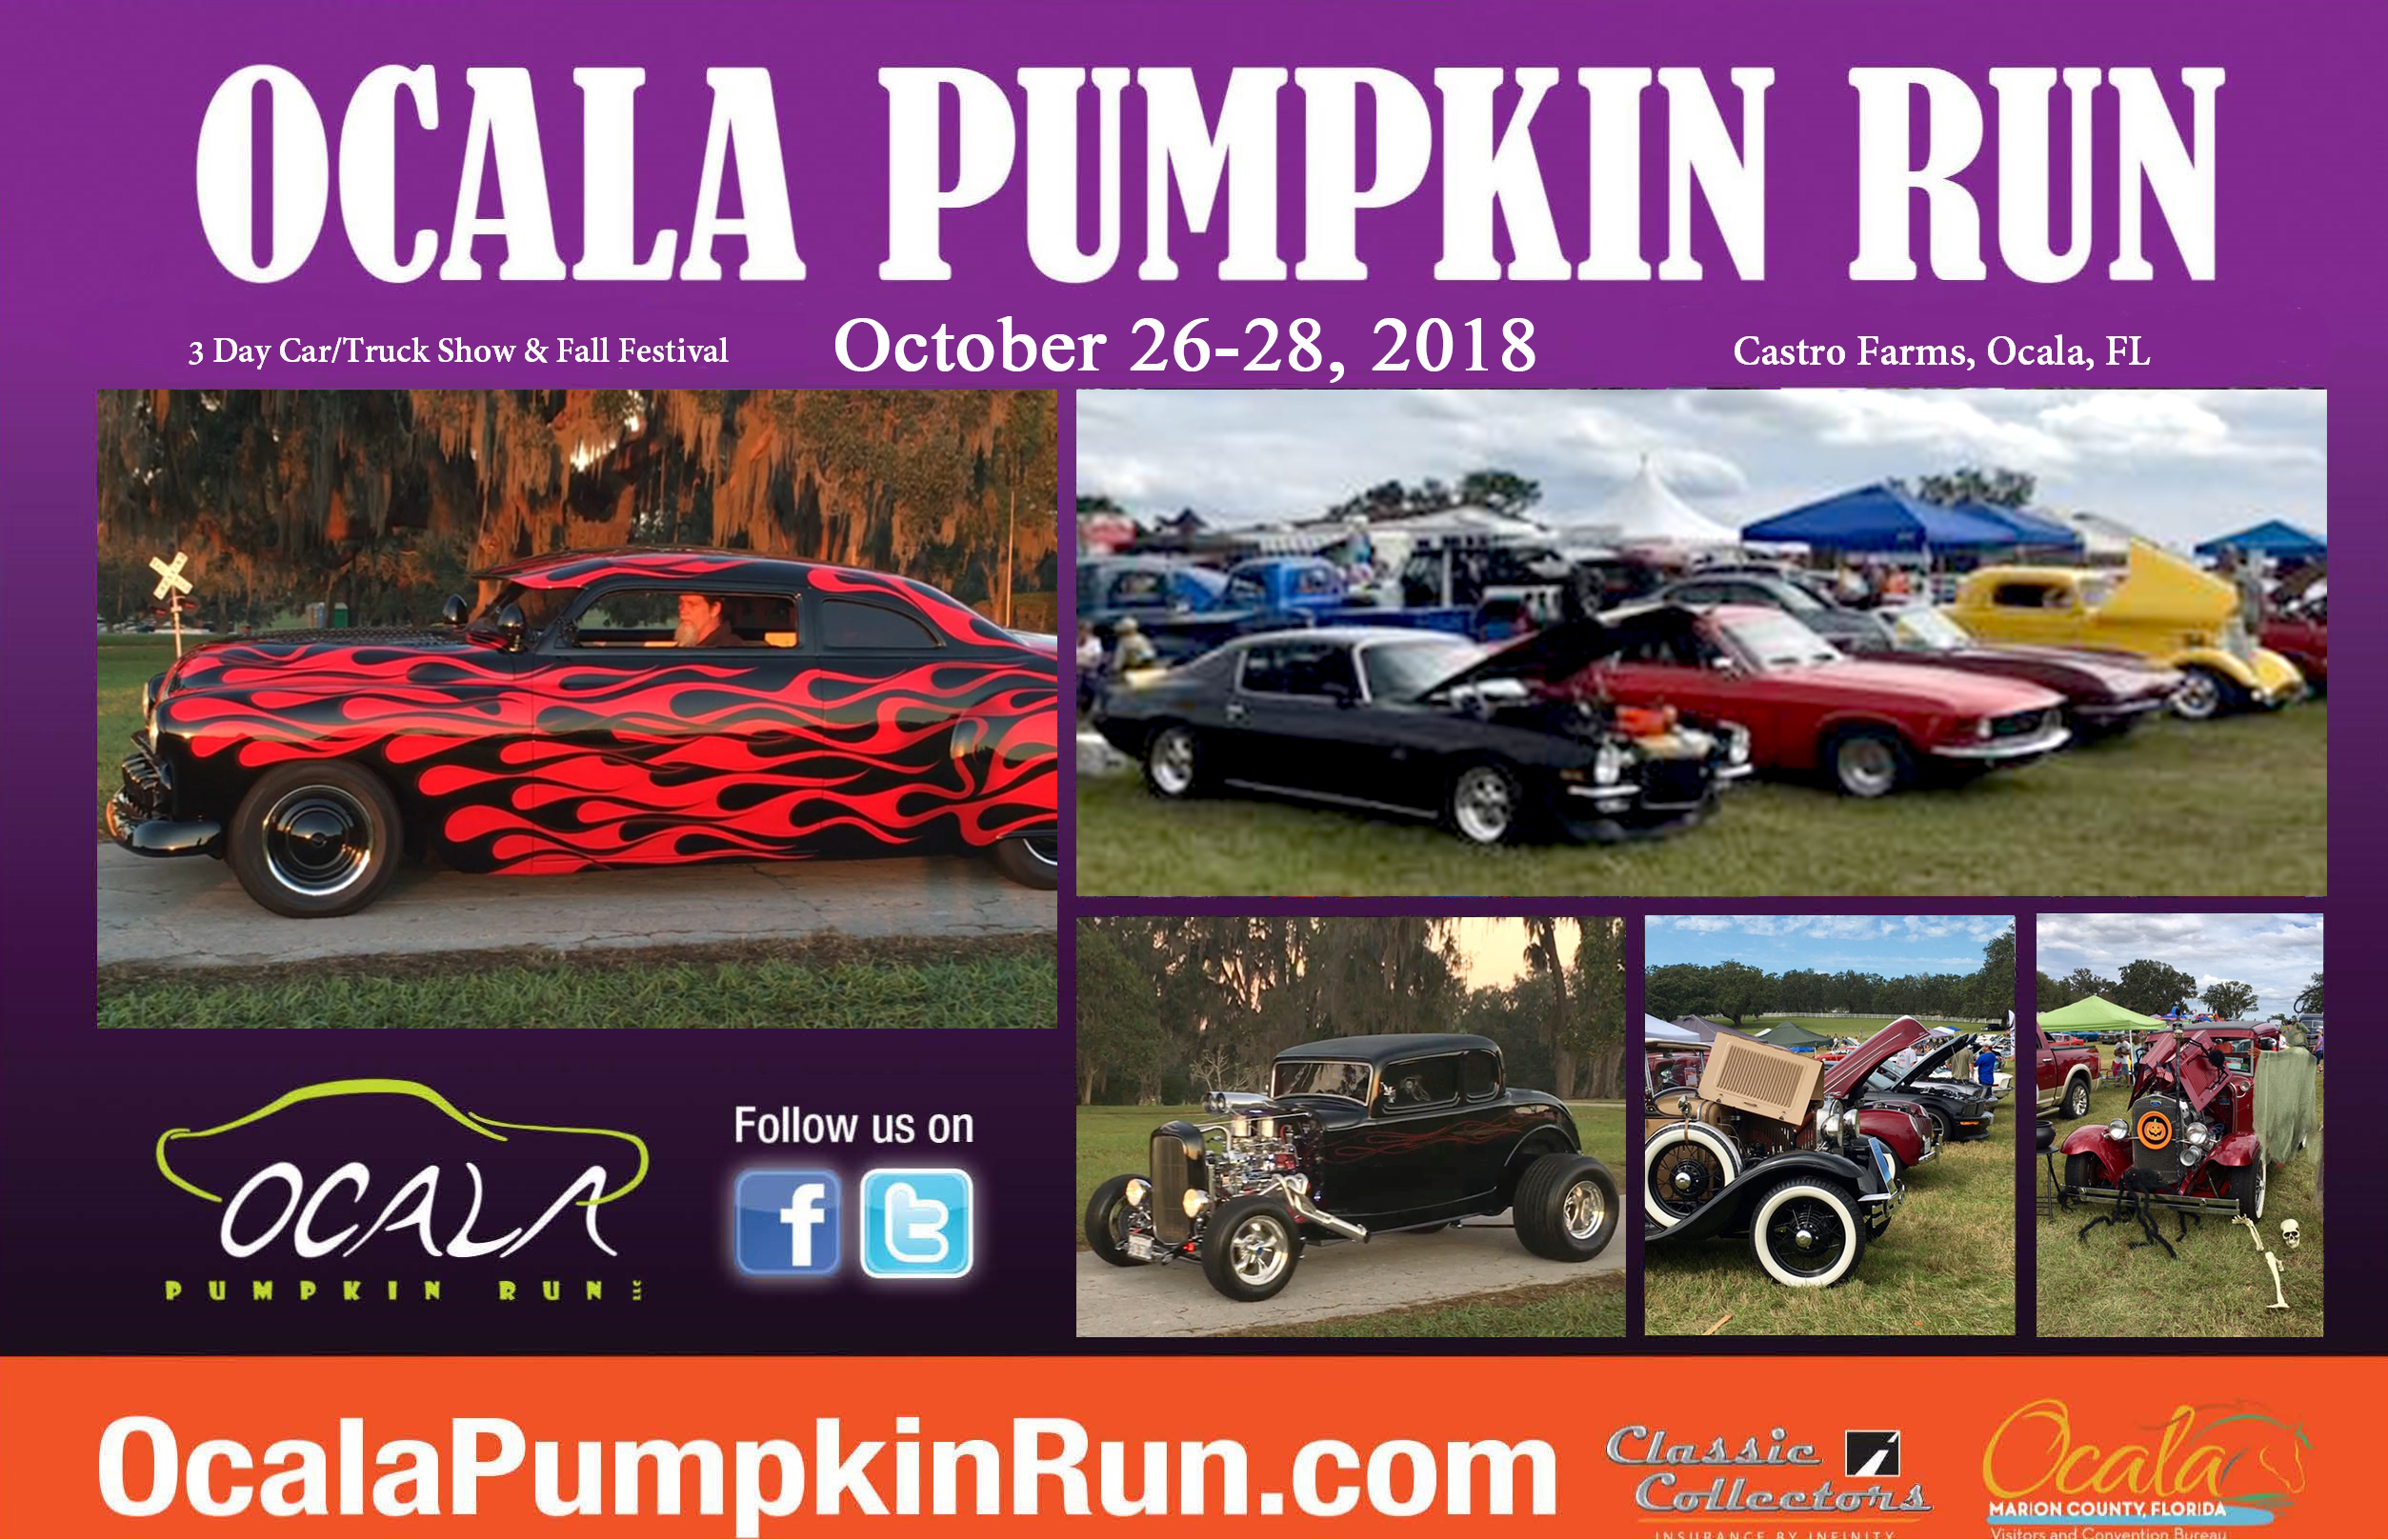 Ocala Pumpkin Run